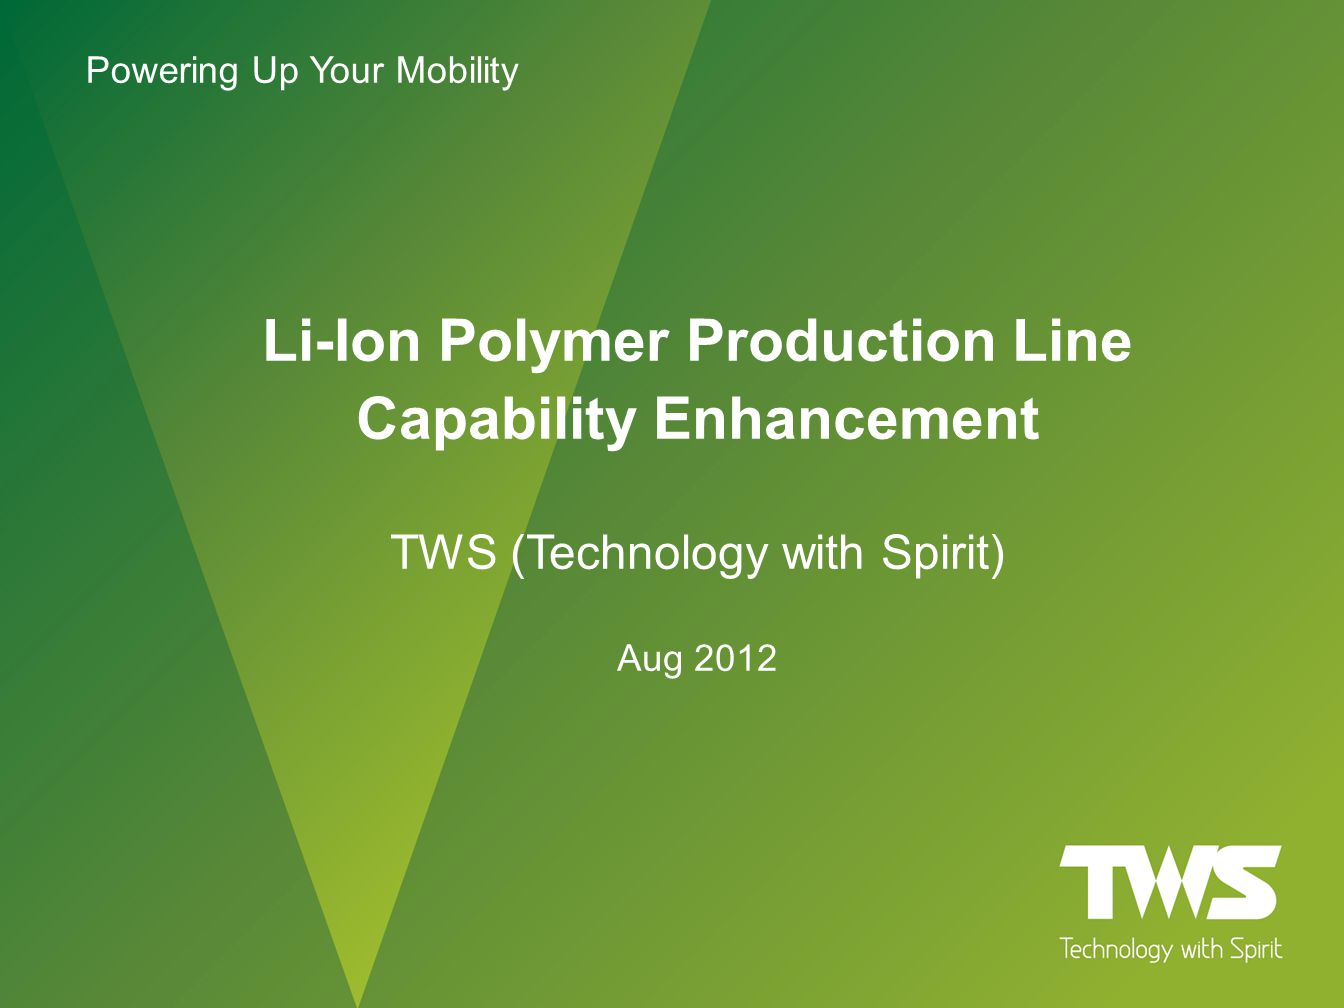 Li-Ion Polymer Production Line Capability Enhancement